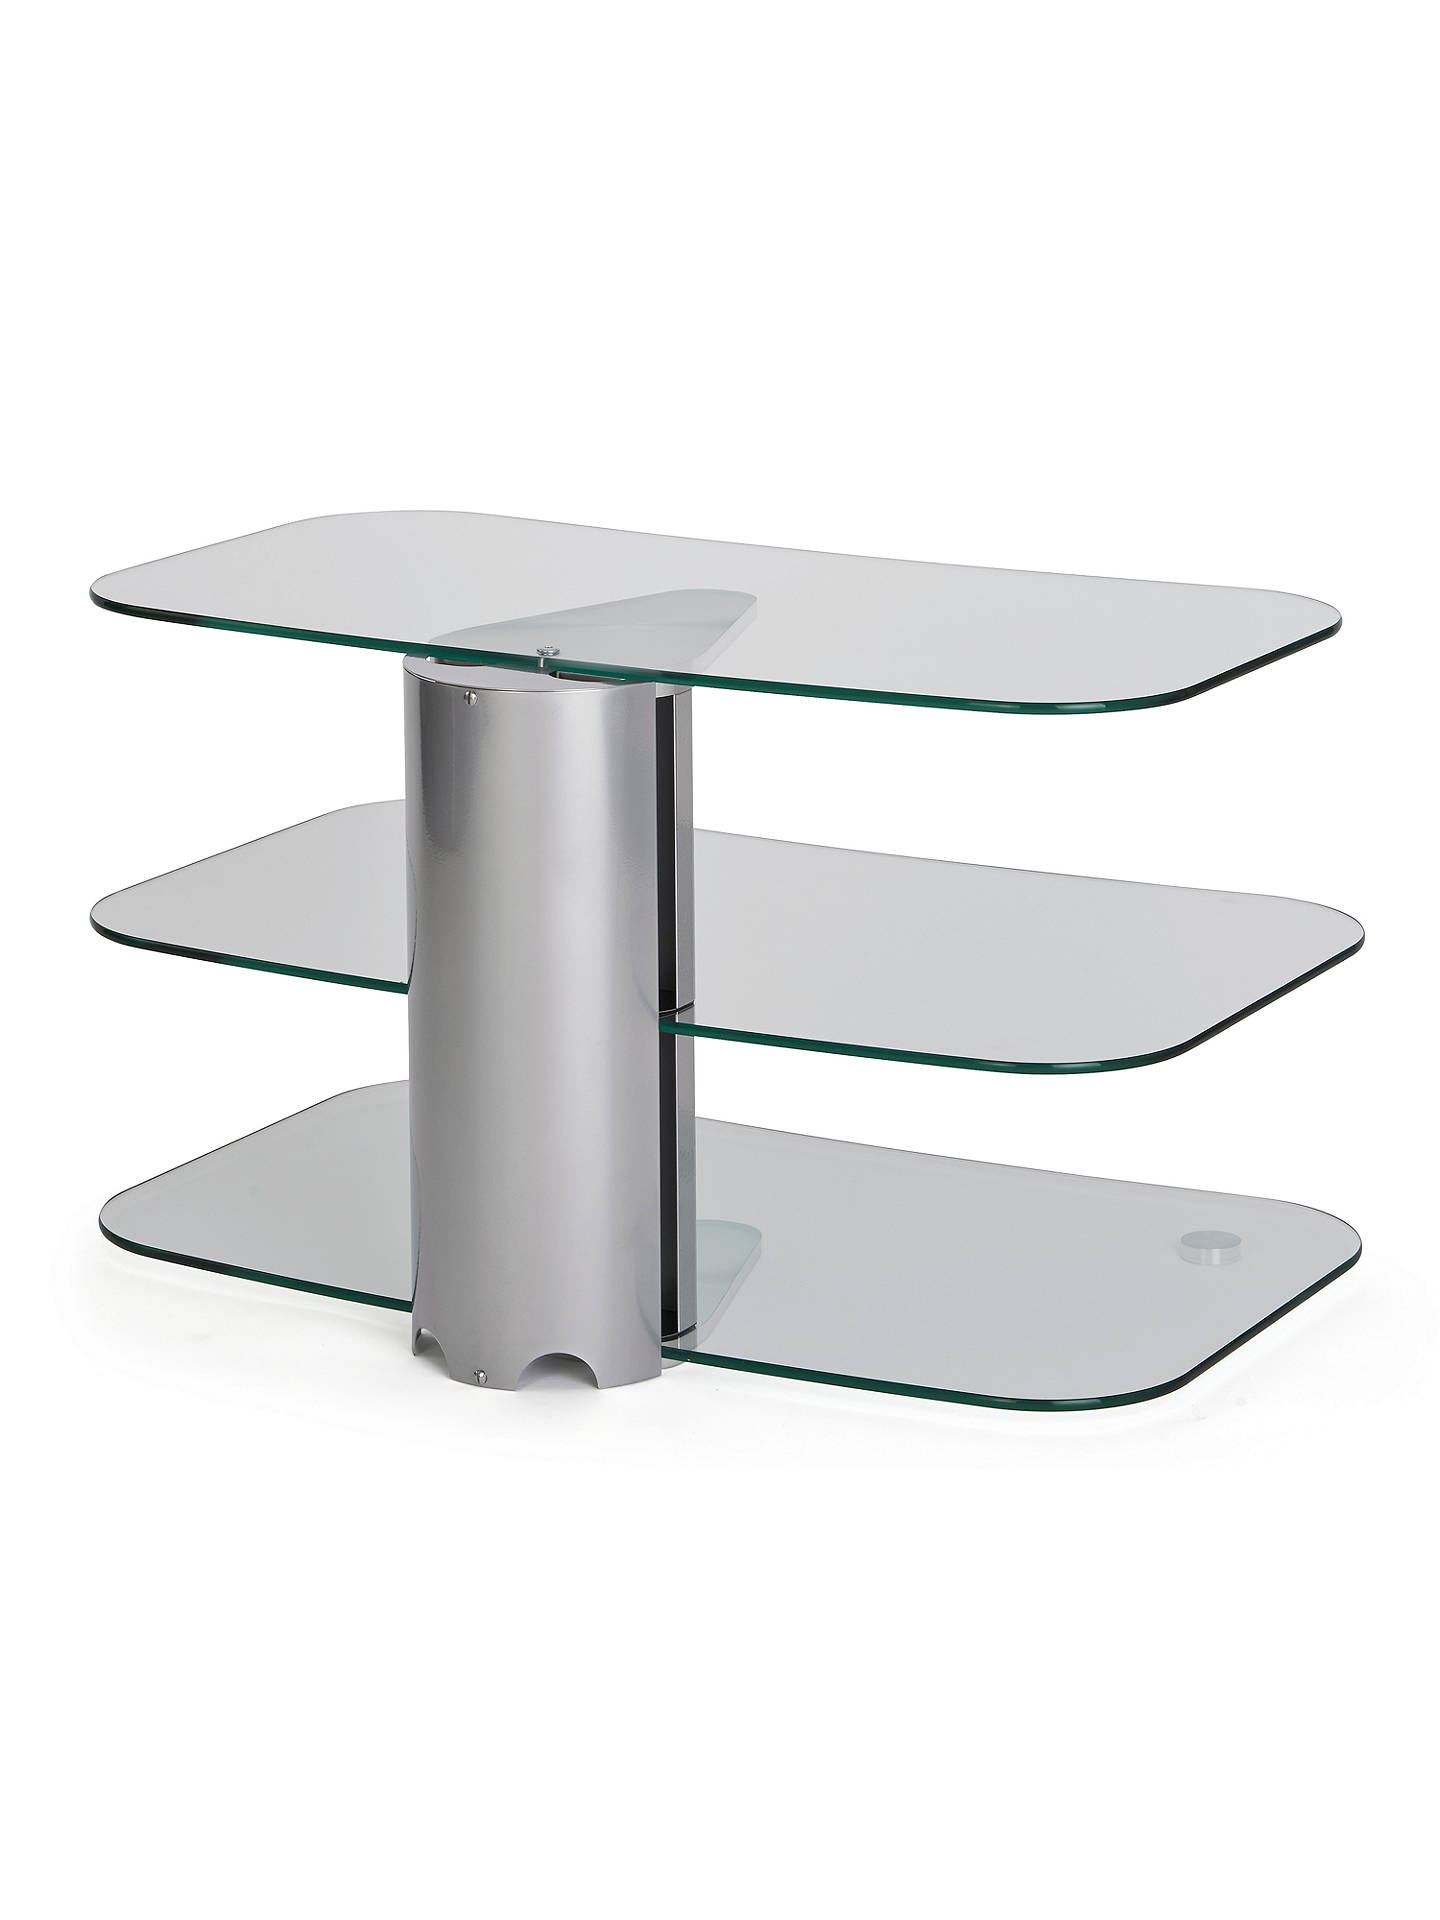 Off The Wall Skyline Arc800 Silver Tv Stand For Curved Screen Tvs Up